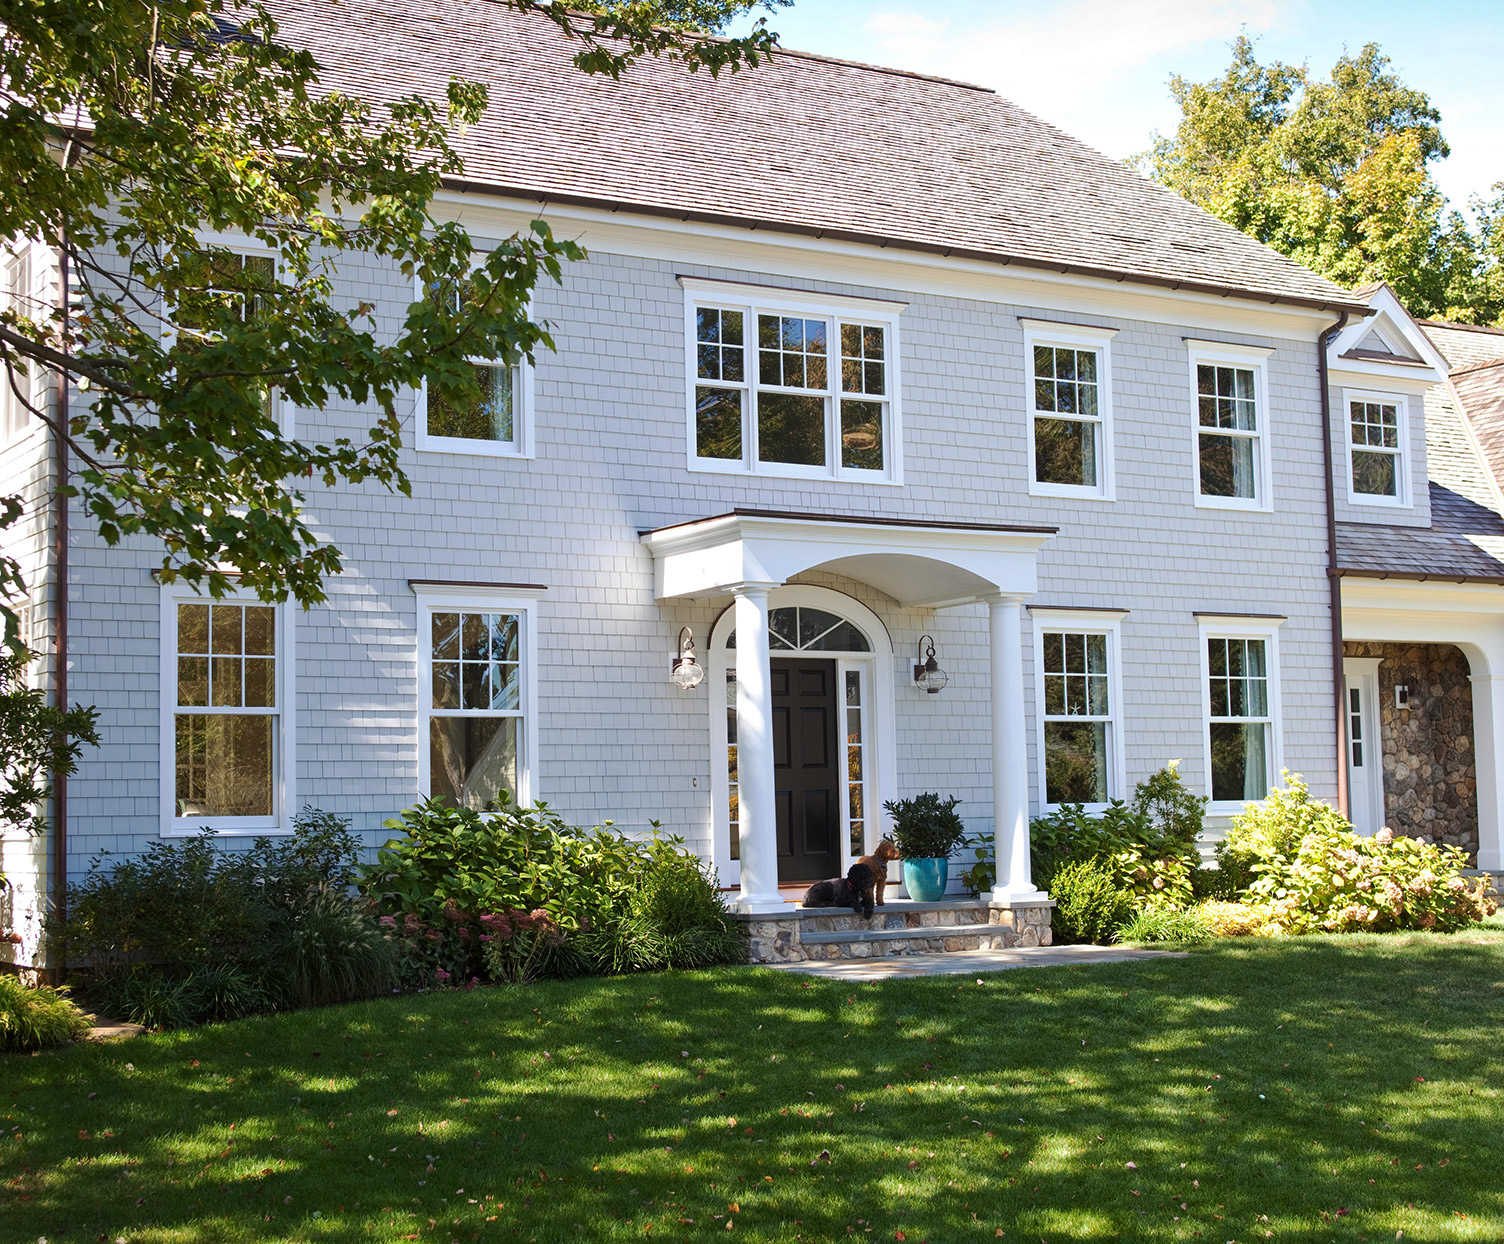 clapboard siding colonial style home